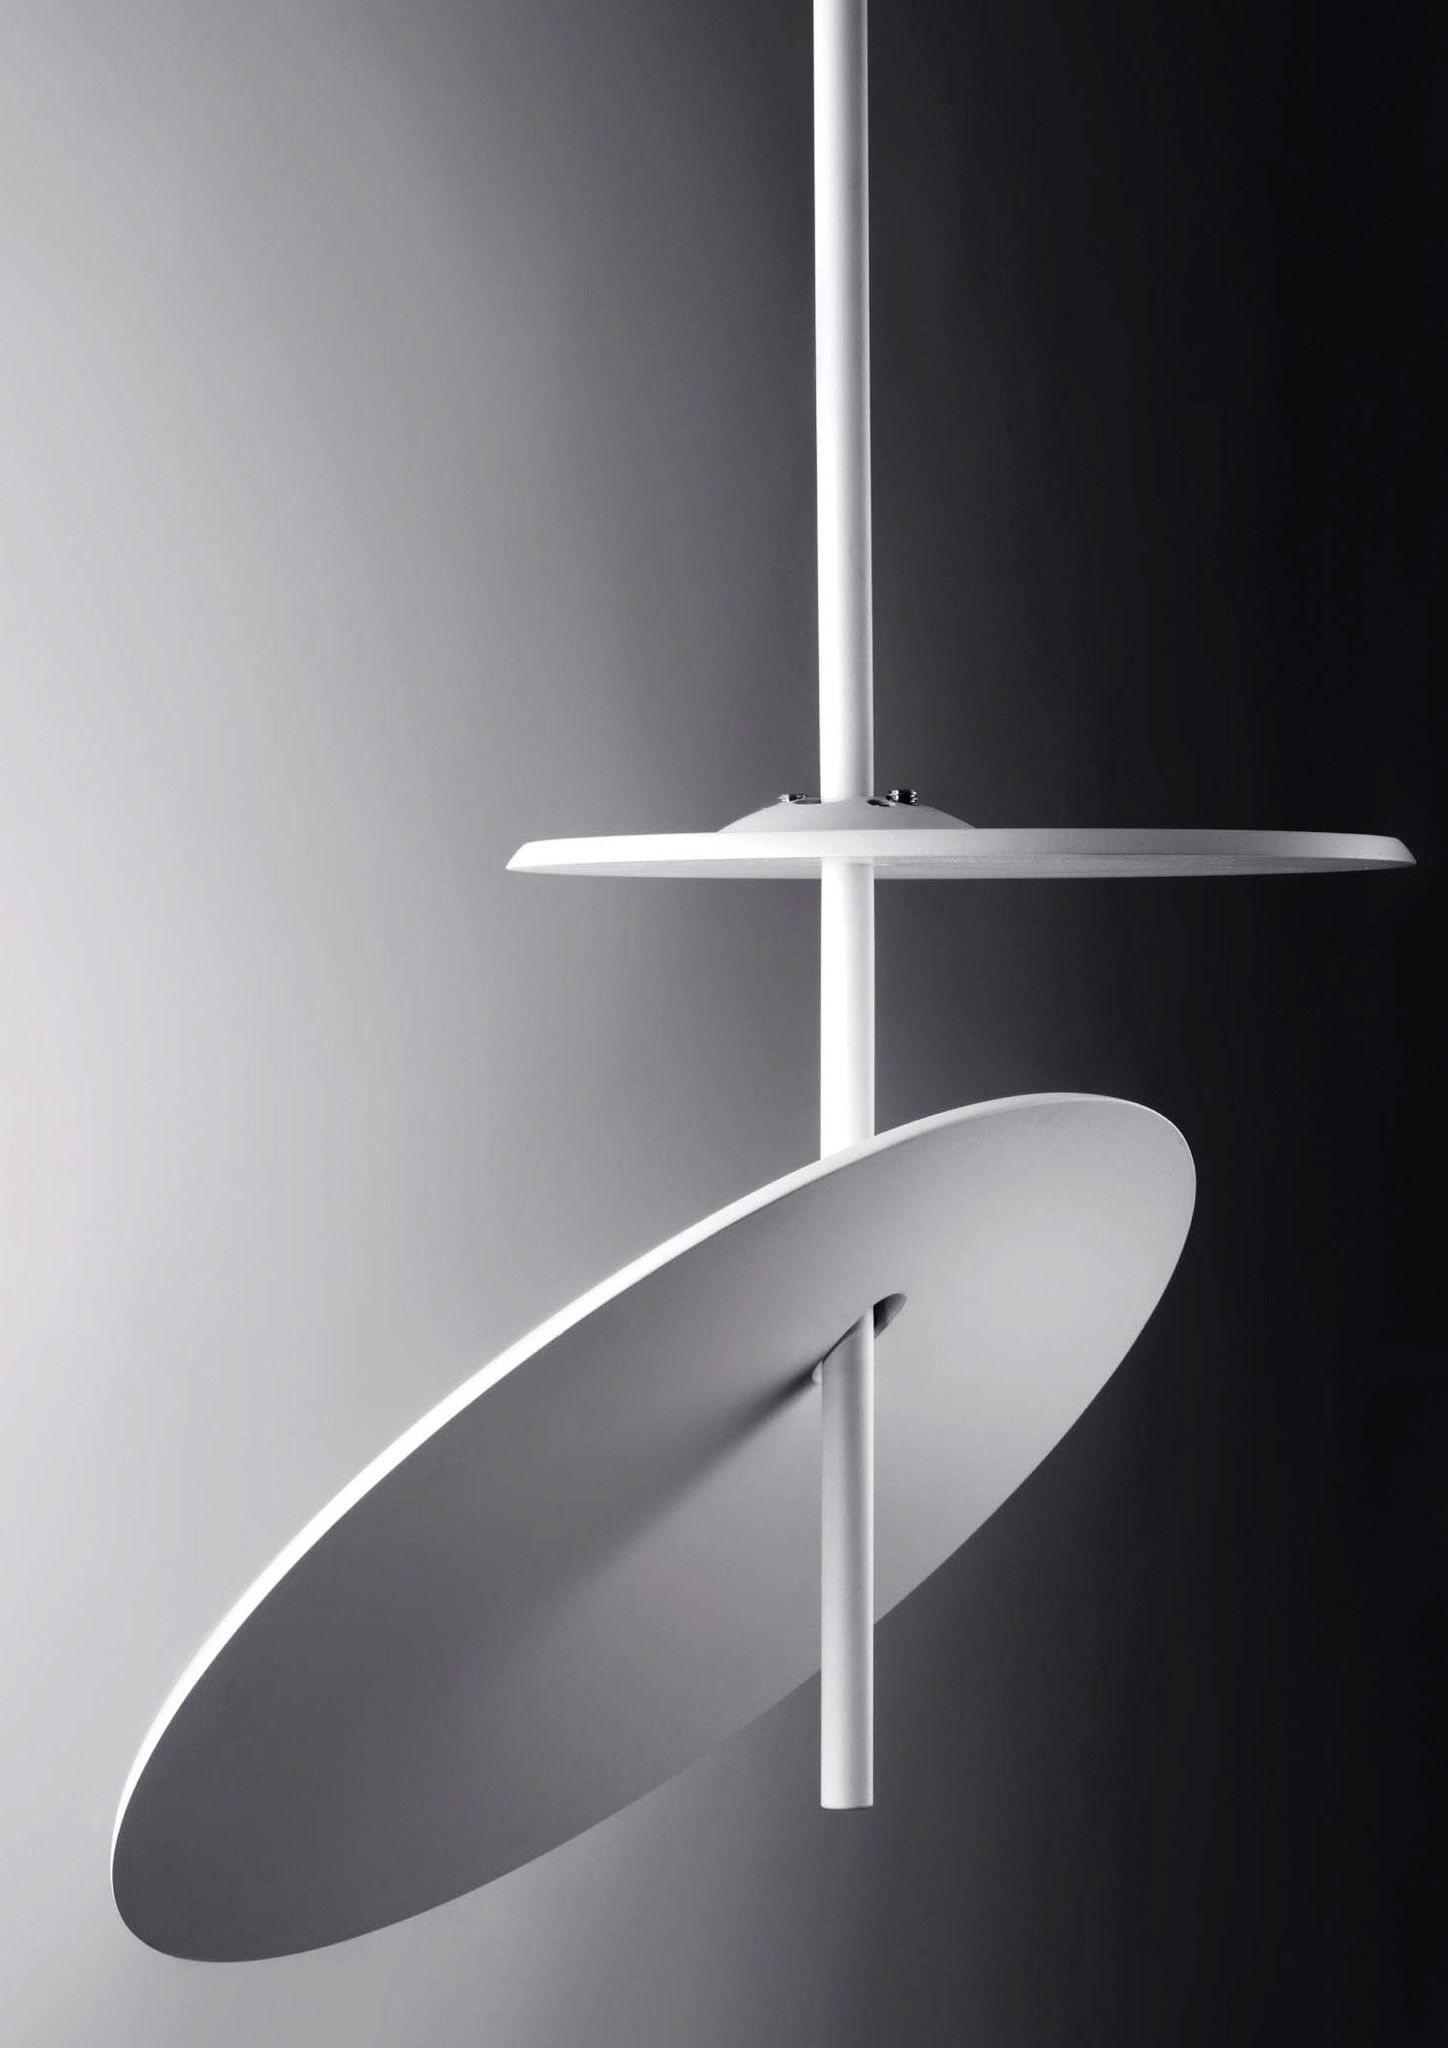 Icone lua 2 suspension pendant london lighting furniture icone lua 2 suspension pendant london lighting ceiling lightsceilings aloadofball Image collections